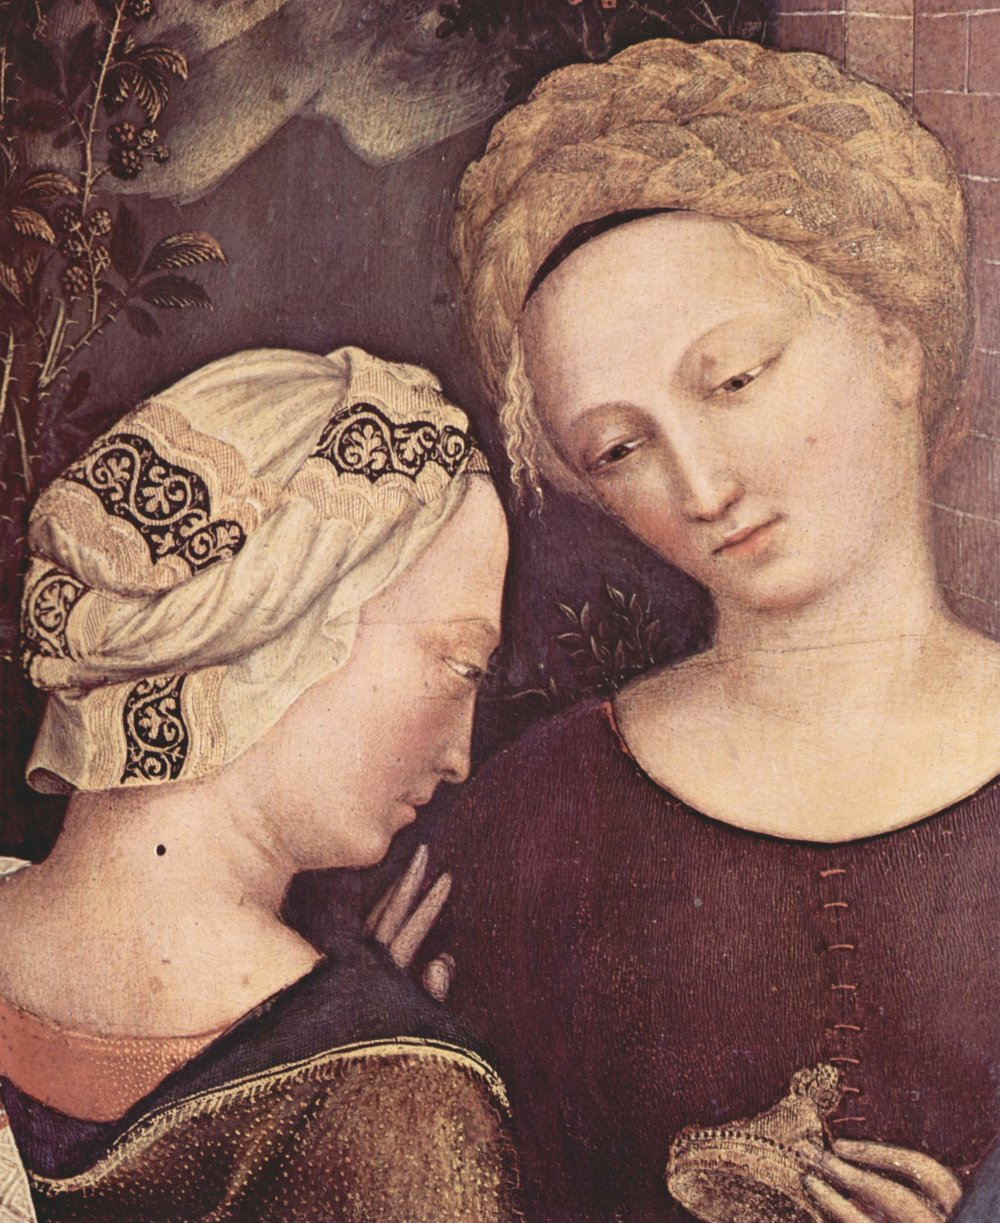 Gentile da Fabriano (Adoration of the Magi, 1423) - Fancy turban